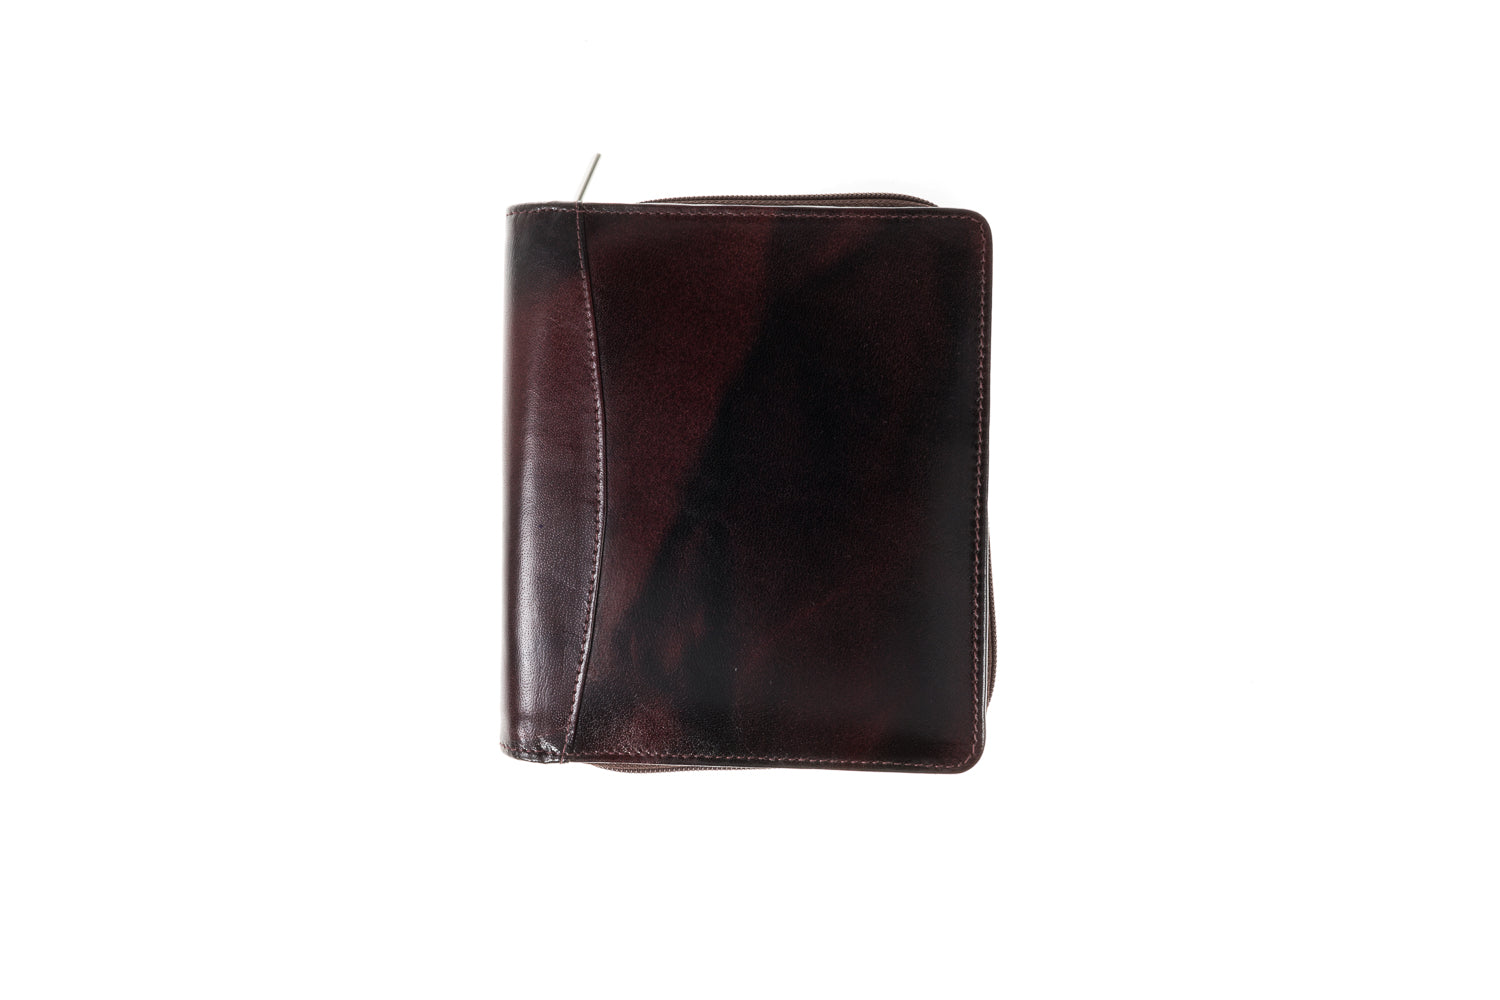 Fountain Pen Case for 24 Pens Oxblood Leather Girologio Brand